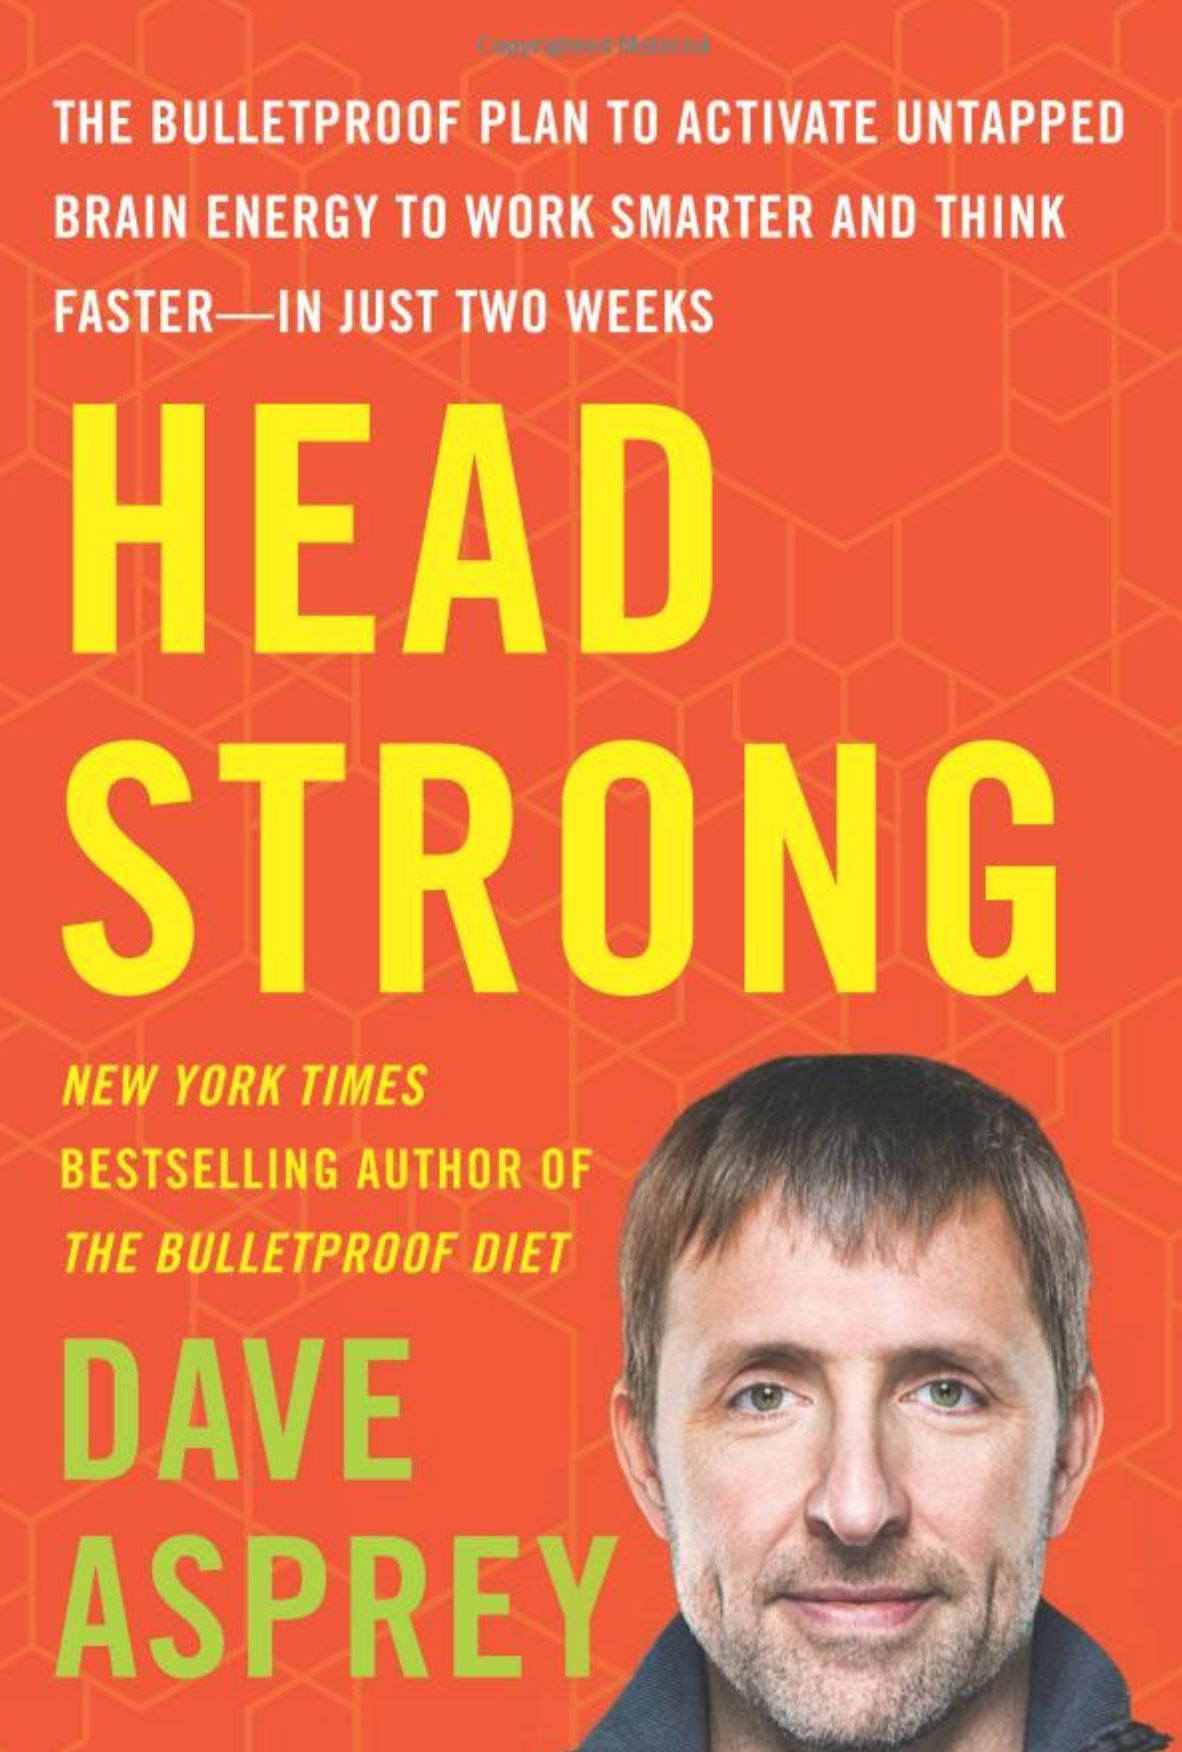 "Head Strong by Dave Asprey (Creator of Bulletproof Coffee) - Markus: This was a very good book, I really liked reading this book. Fifth grade book report joking aside – this is the most important book I've read in the last few years. The premise is that brain fog, fatigue, and the ""afternoon slump"" are not normal – and that instead they're warning signs from the brain that it isn't getting what it needs. Dave argues that there are many ways we're shooting ourselves in the proverbial foot when it comes to energy, focus, and overall wellness and ease in our bodies – most of which have pretty easy fixes with exponential results. Forget fad diets and ""weird tricks"", everything in the book is based on documented, repeatable research. Dave doesn't present any rules or preach – he just offers what he's learned so you can try and see what works for you. But don't take MY word for it!"